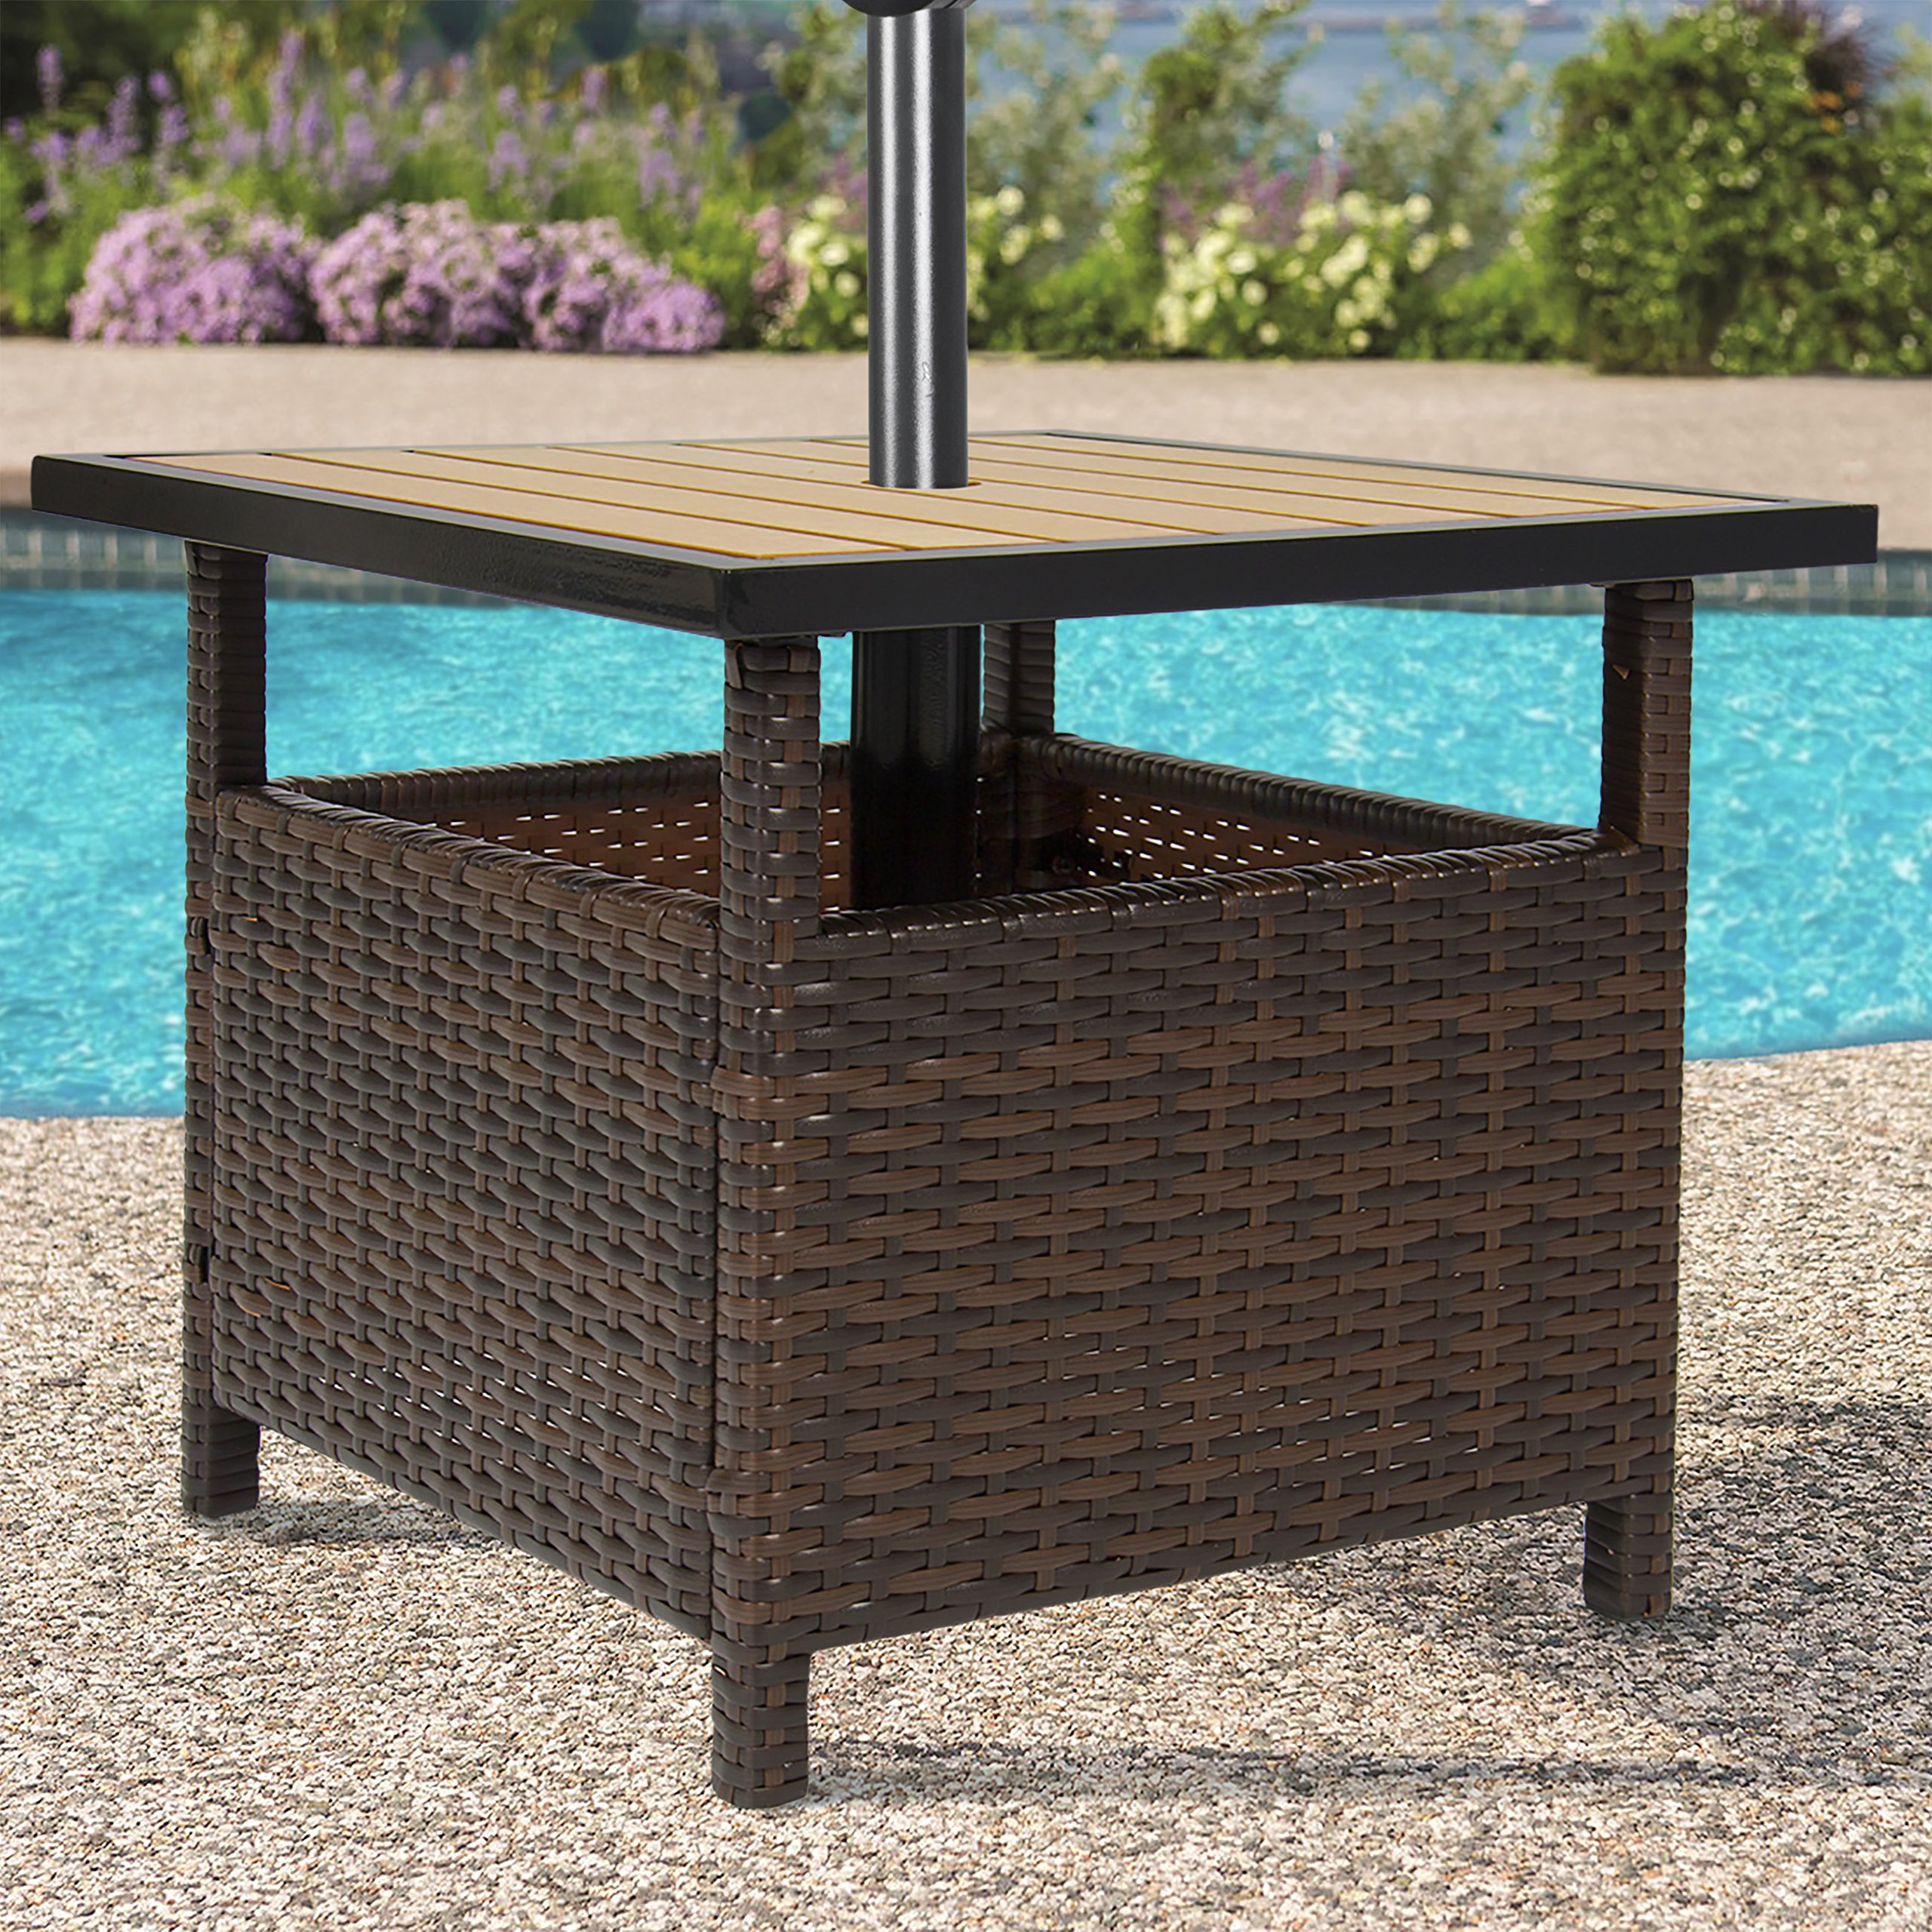 Modern Style Outdoor Rattan Patio Umbrella Stand Table for Garden or Pool Deck made of Durable Sturdy Weather Resistant Wicker and Wood Top with Rust Restistant Steel Frame Construction